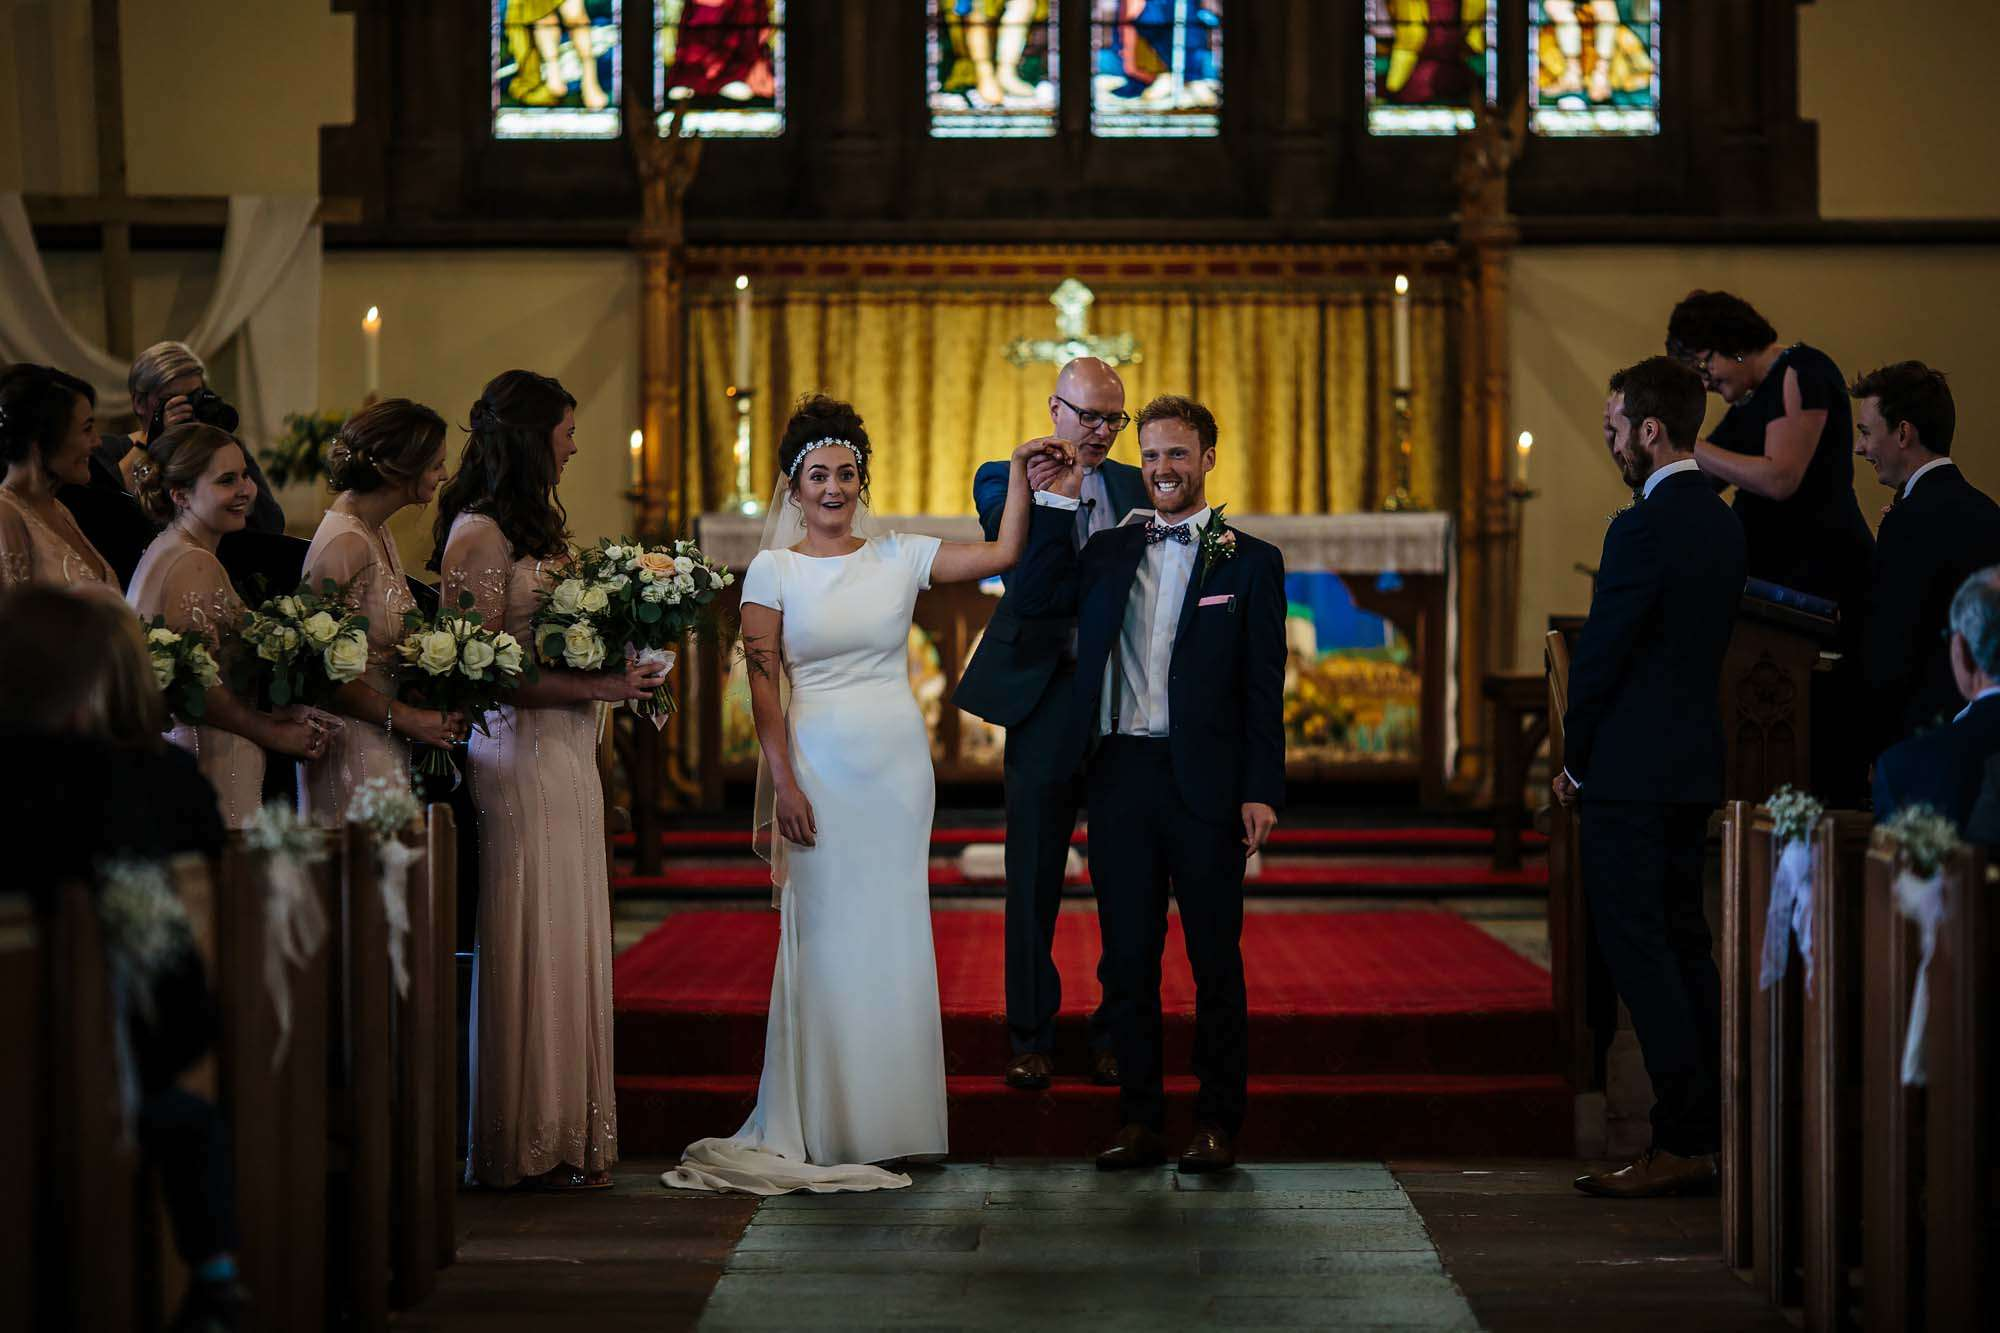 Bride and groom celebrate their church wedding